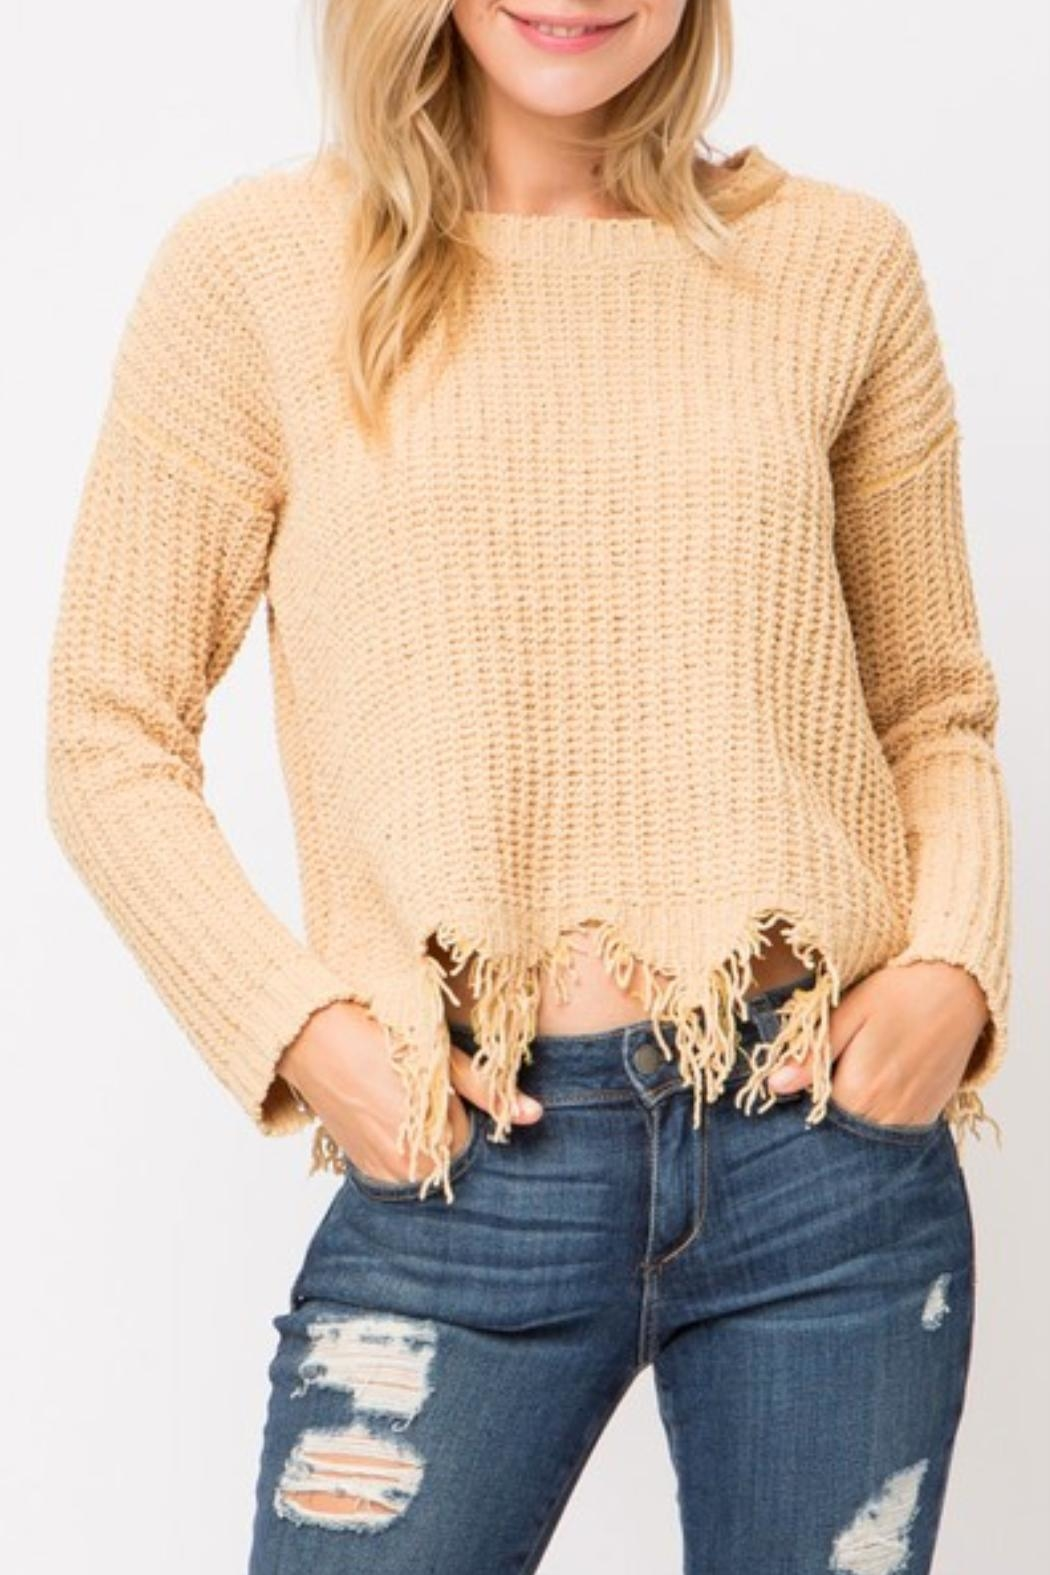 3ffc0befee693 Cozy Casual Distressed Knit Sweater from California by Apricot Lane ...